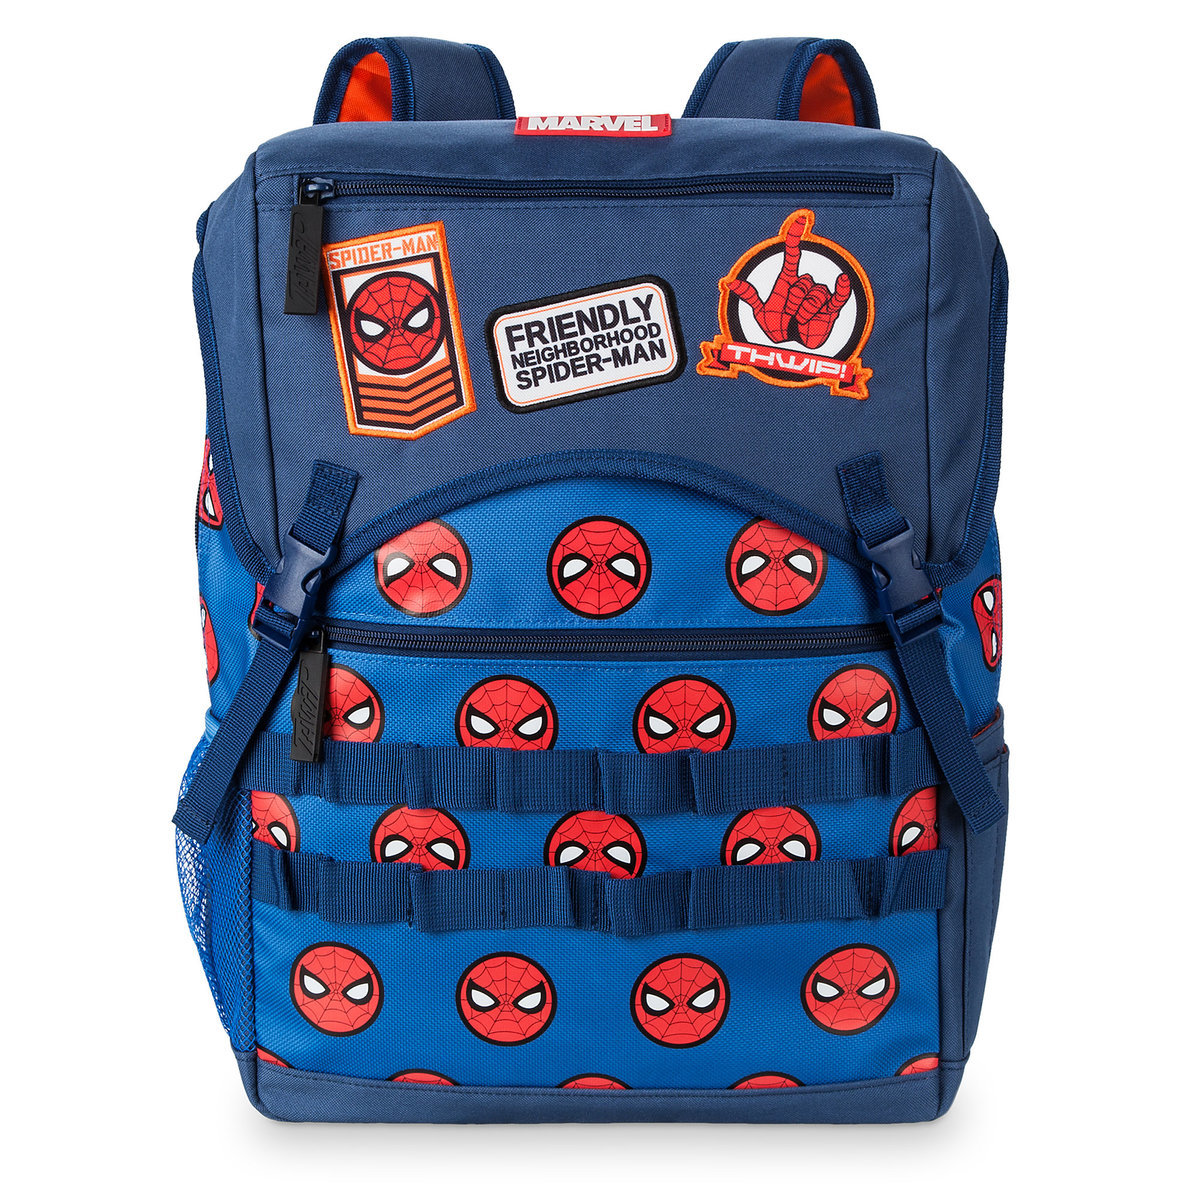 02d7497192 Product Image of Spider-Man Backpack for Kids - Personalized   1